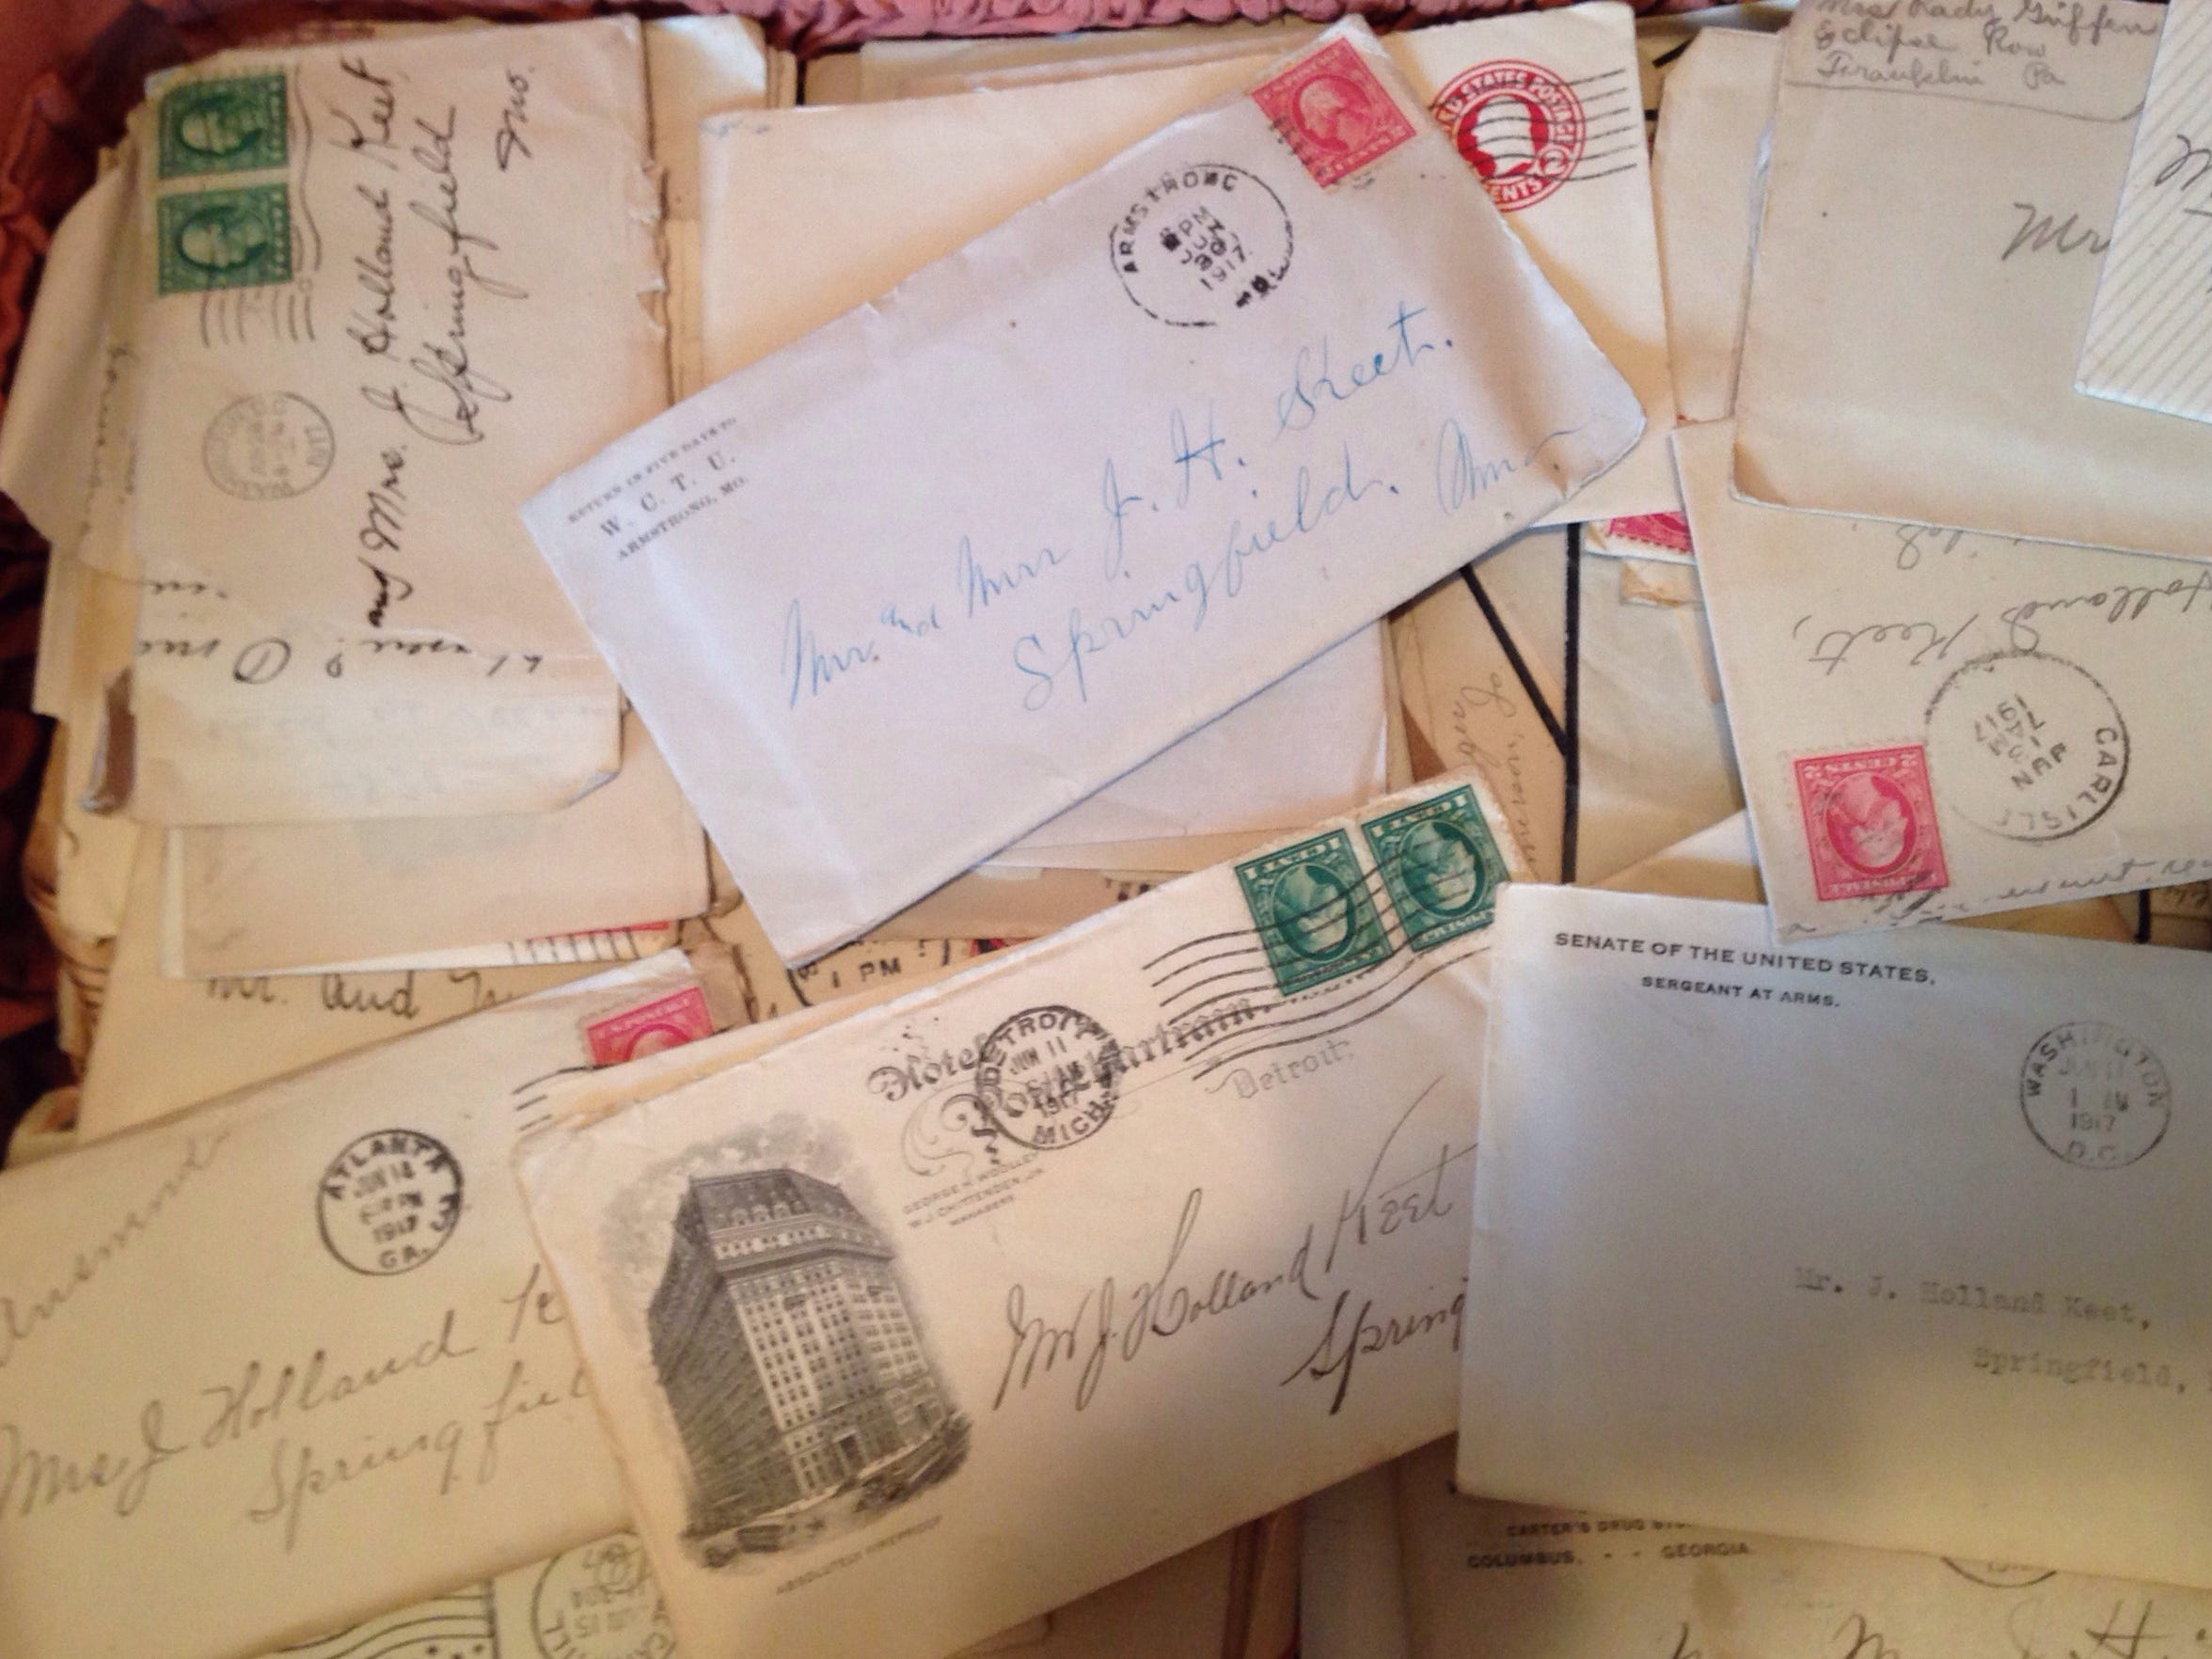 The parents of the dead baby received letters of sorrow